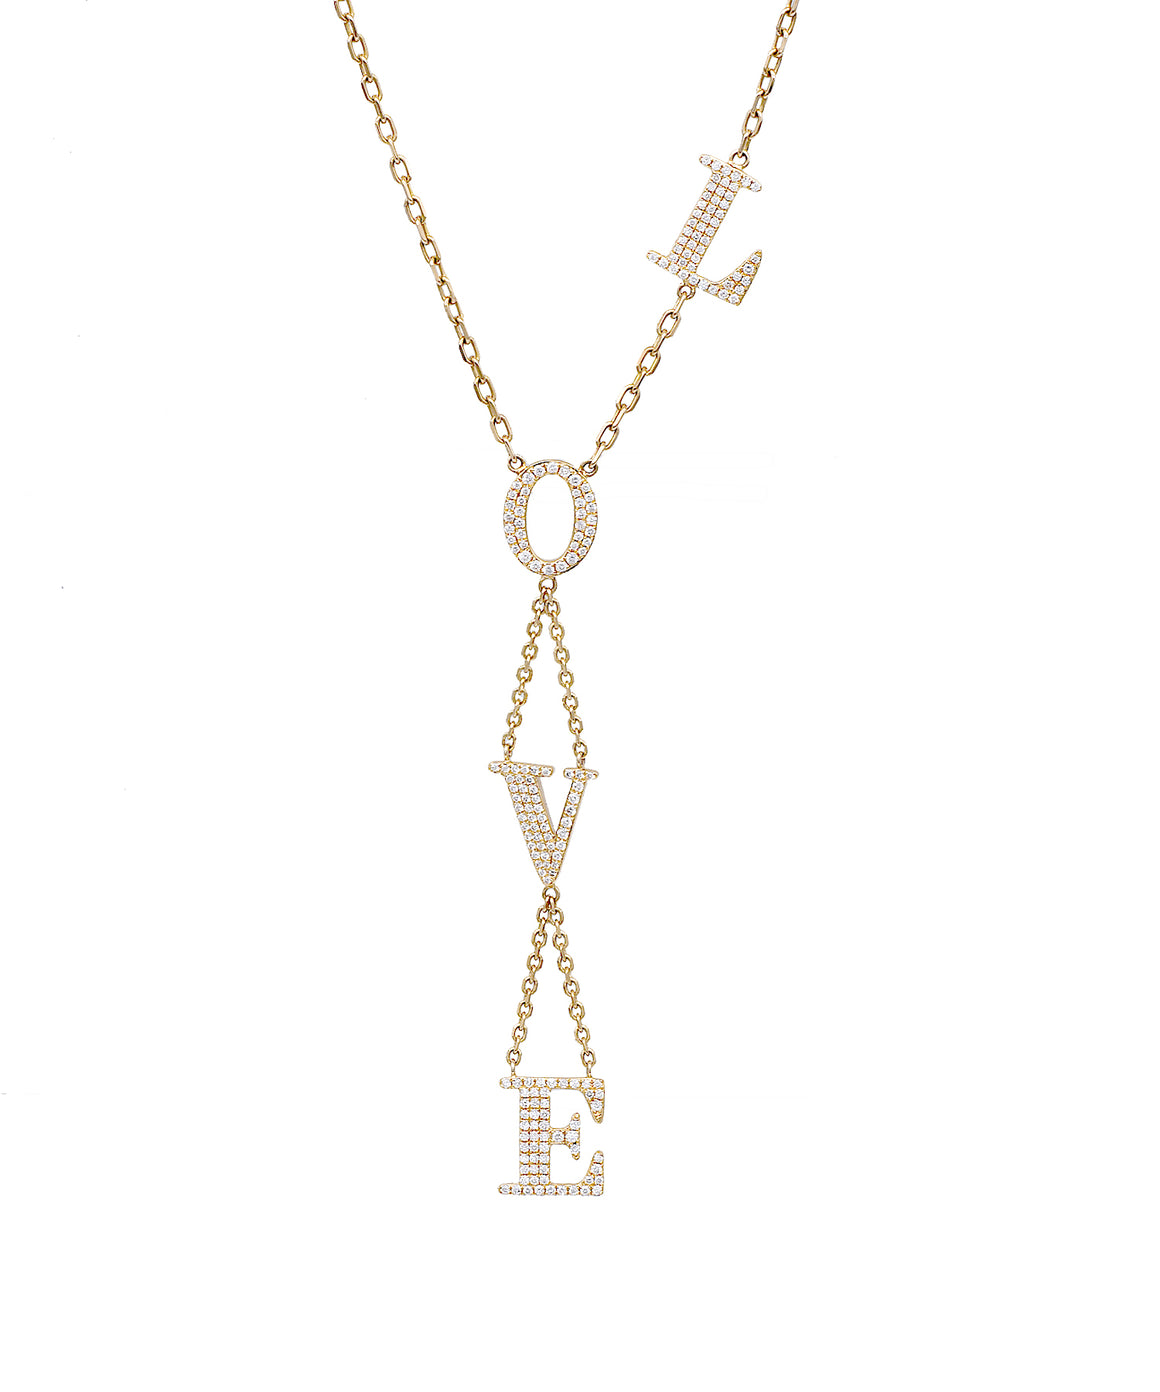 LOVE Necklace - Lesley Ann Jewels